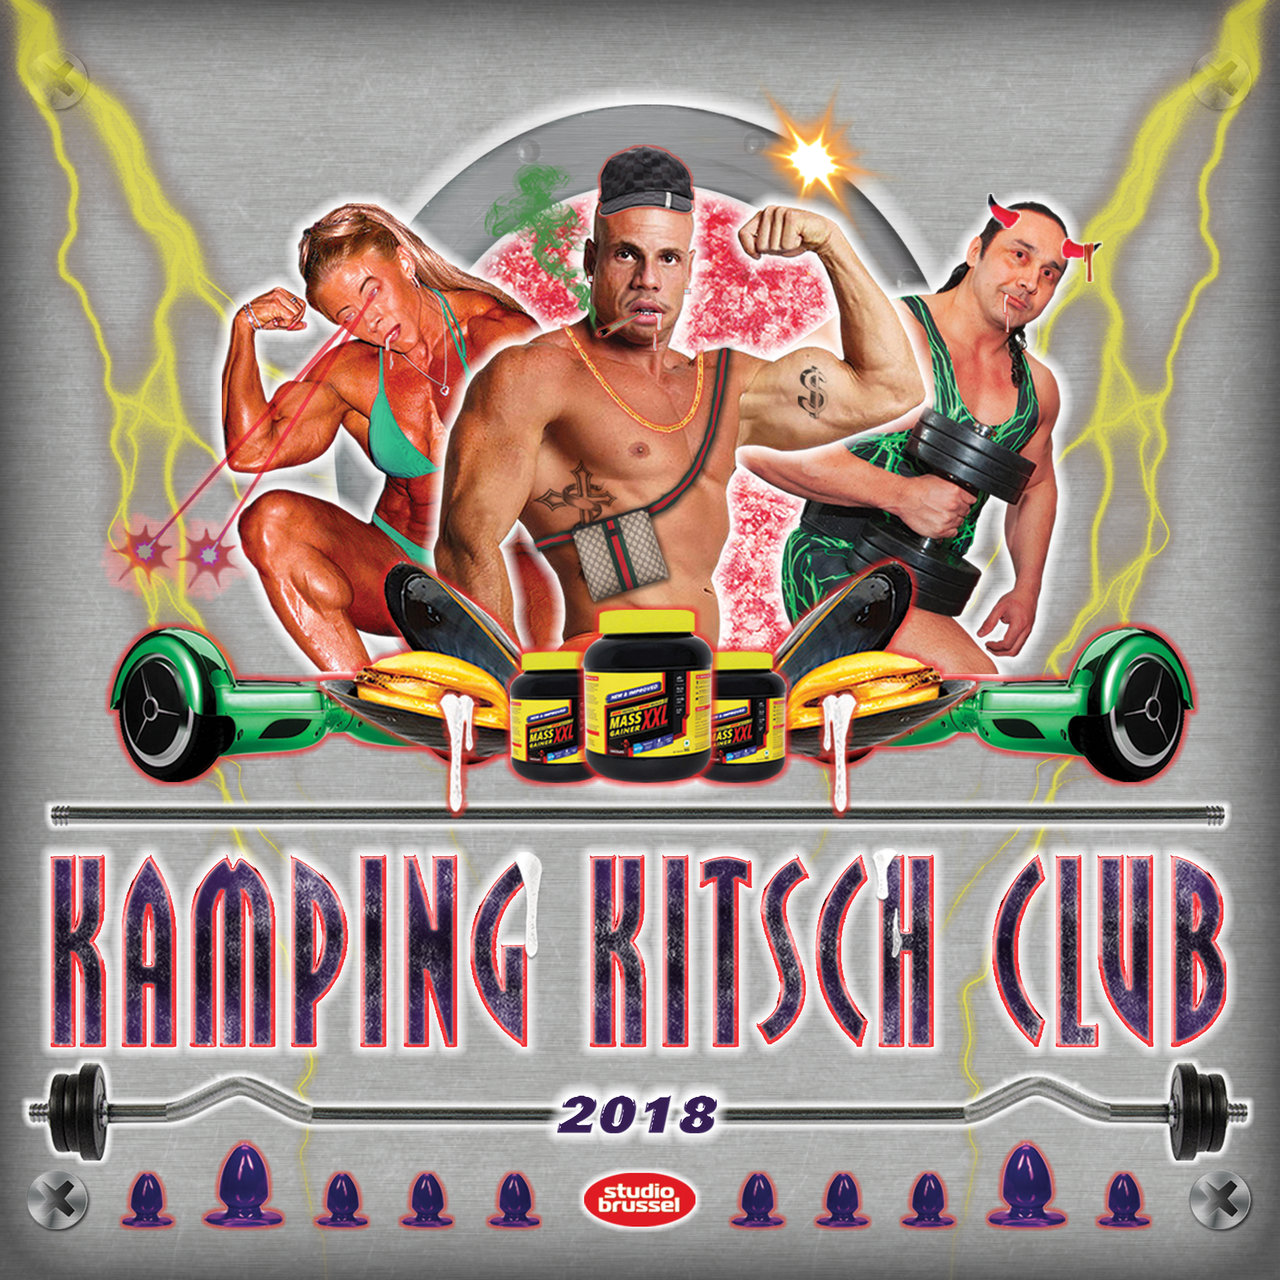 Kamping Kitsch Club 2018